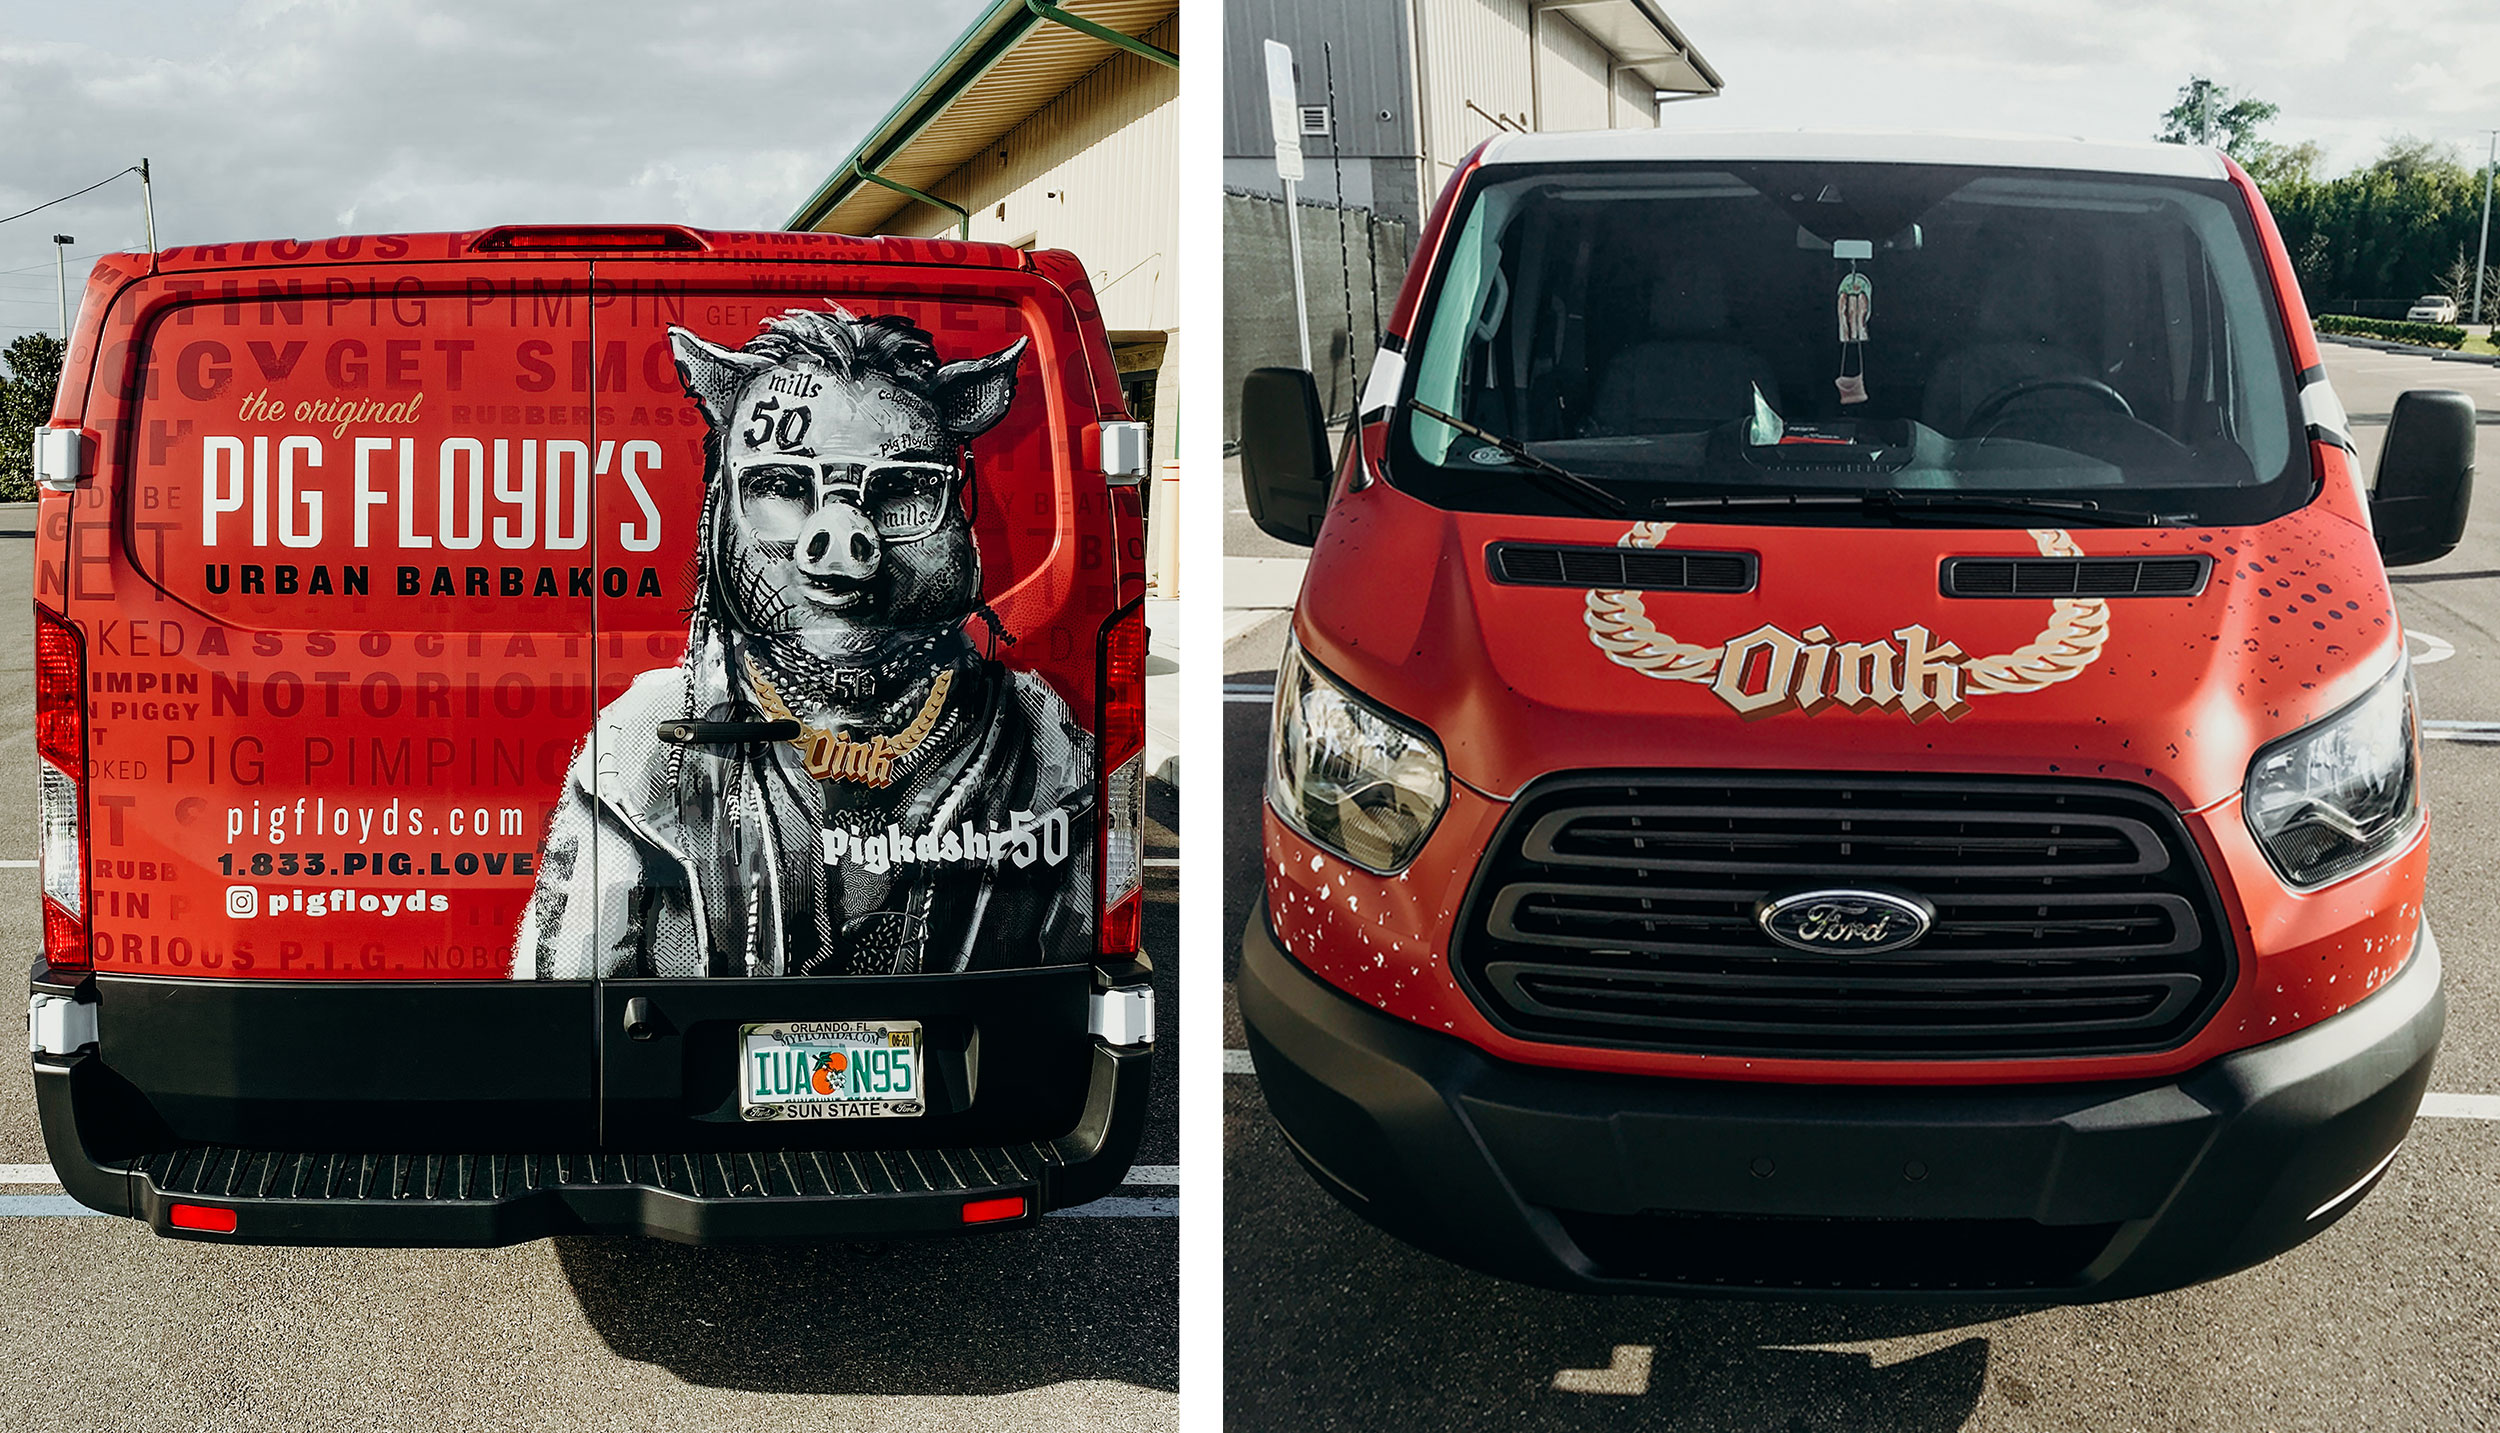 K Fresh Ink Signs + Graphics (Orlando, FL) designed this vehicle wrap for Pig Floyd's Urban Barbakoa, and then printed the graphic on its Roland DGA machine. Photos by Vanessa Boy.